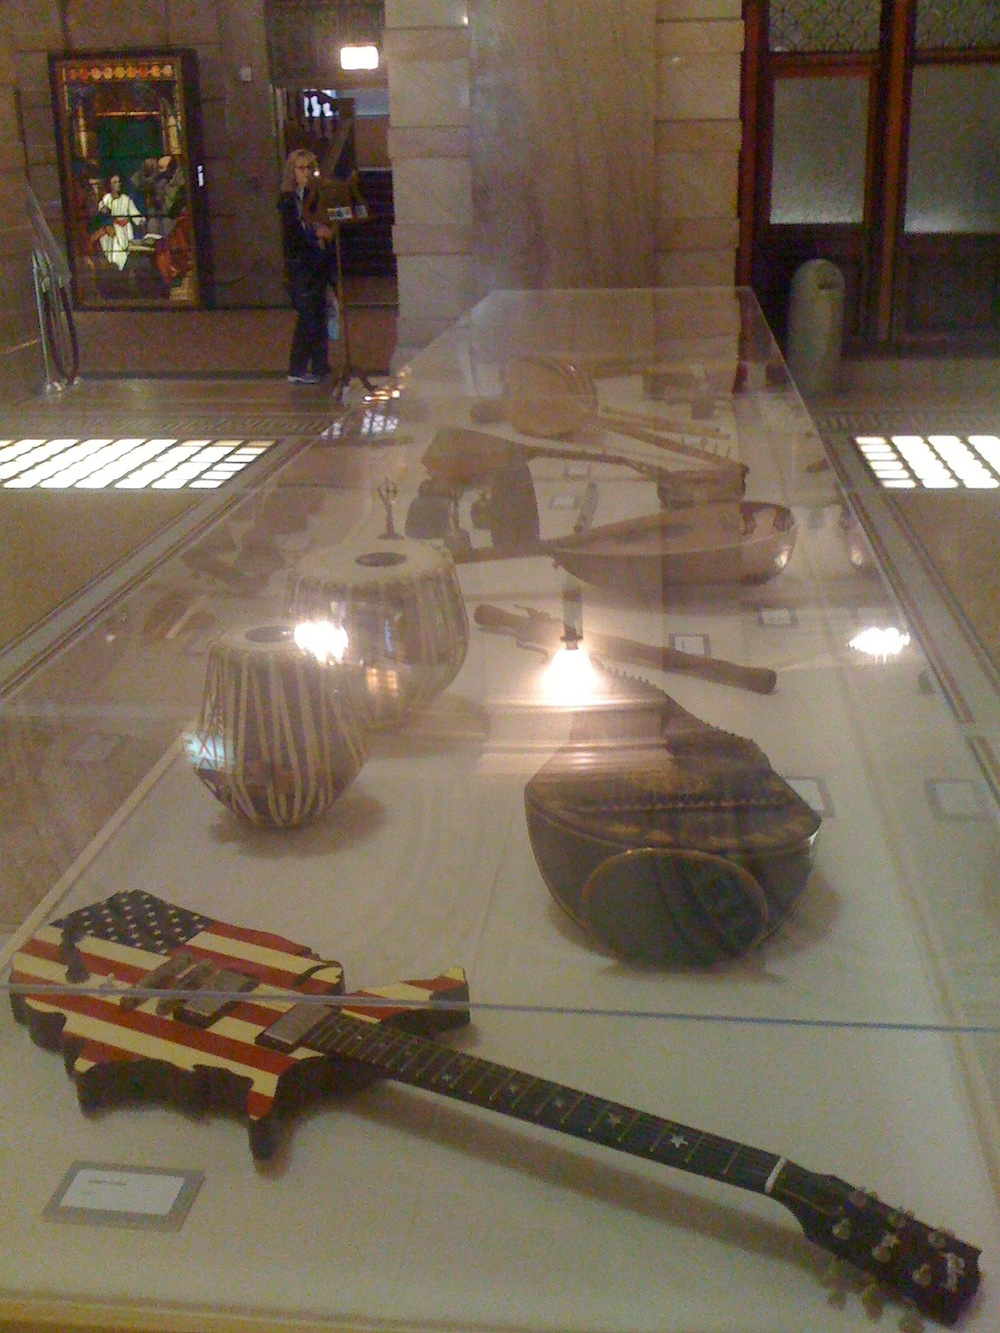 """Co-Producer, Co-Curator and Creator of the """"Worlds of Music"""" instrument exhibit at Chicago Cultural Center as part of World Music Festival 2010."""